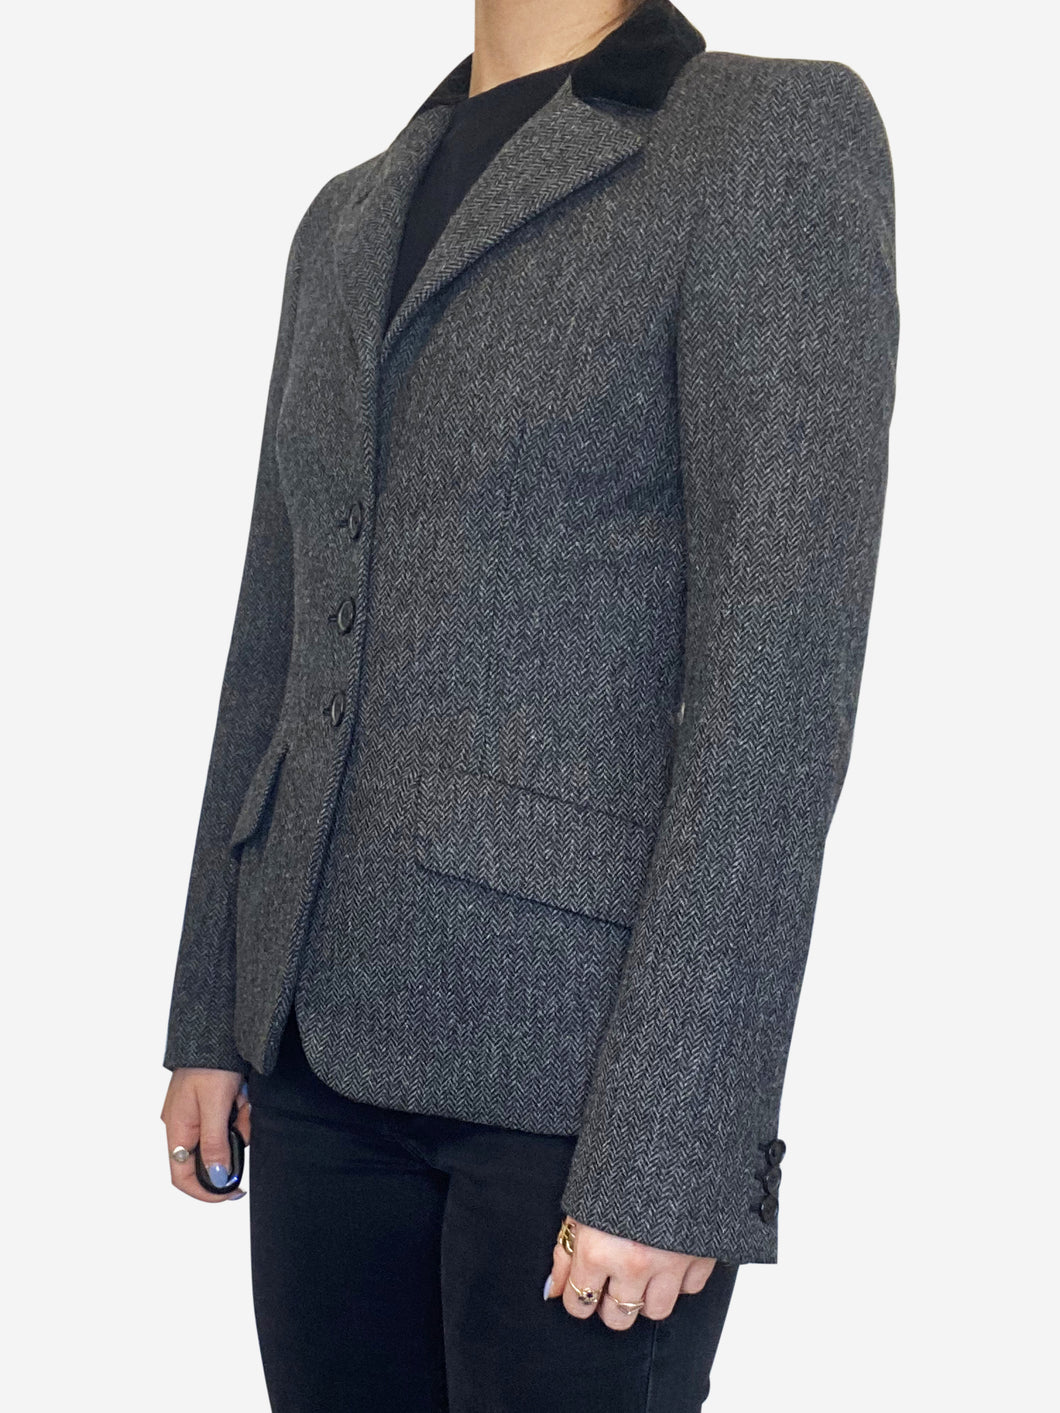 Black and grey wool tailored blazer - size UK 10